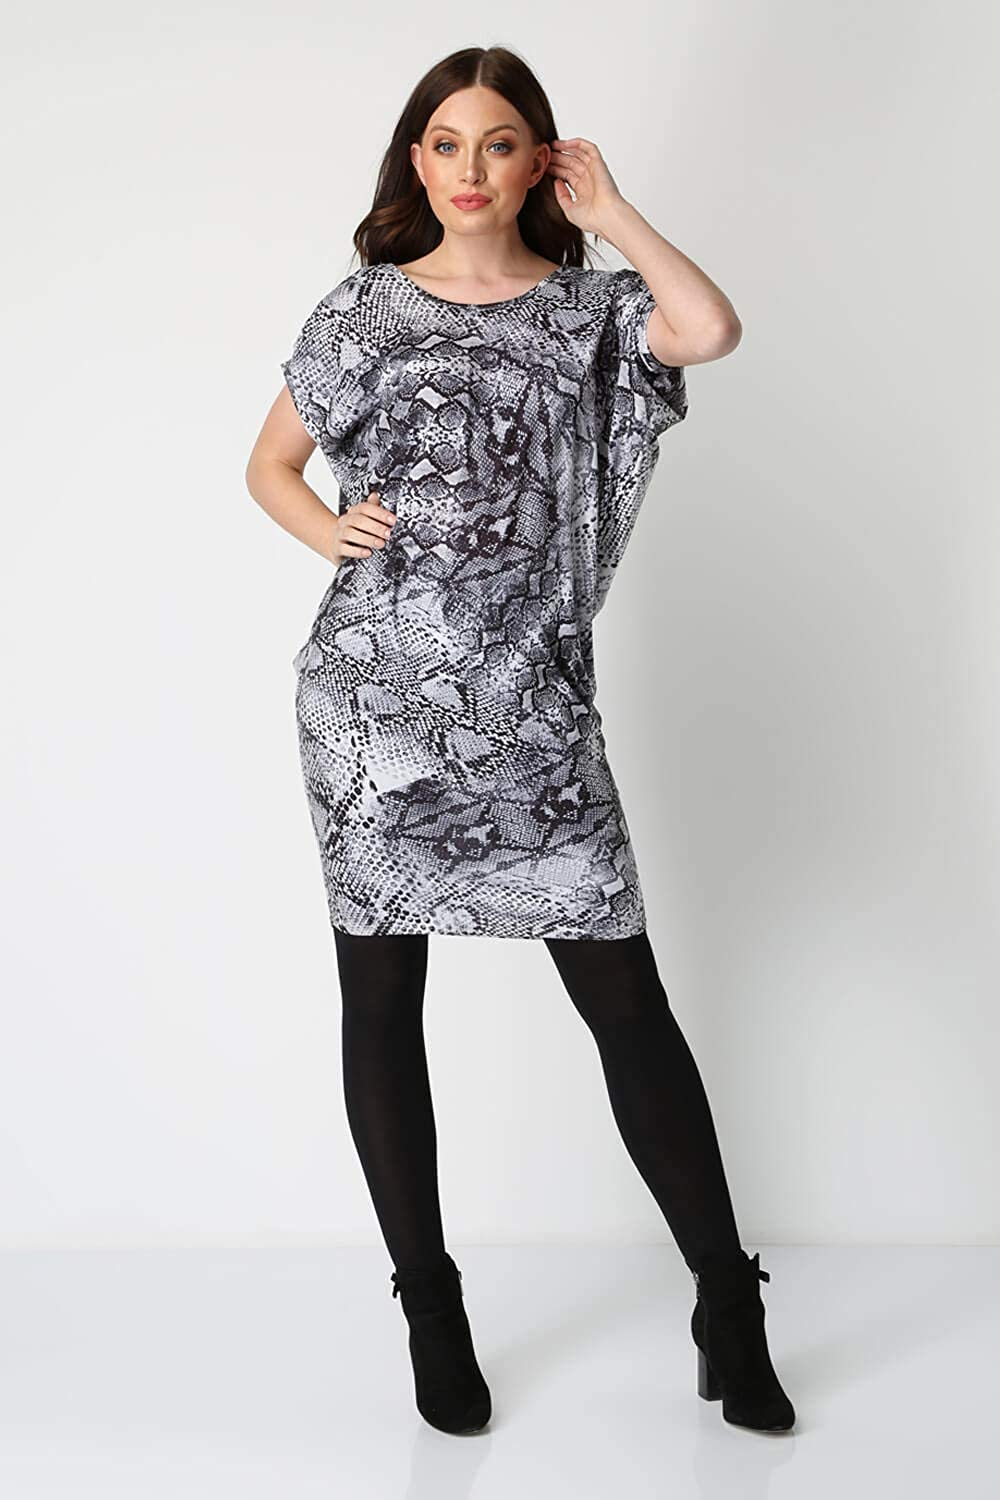 b30586939c Roman Originals Women Snake Print Slouch Dress - Ladies Smart Casual  Daywear Day Outfit Work Office Short Sleeve Knee Length Soft Jersey Dresses   ...